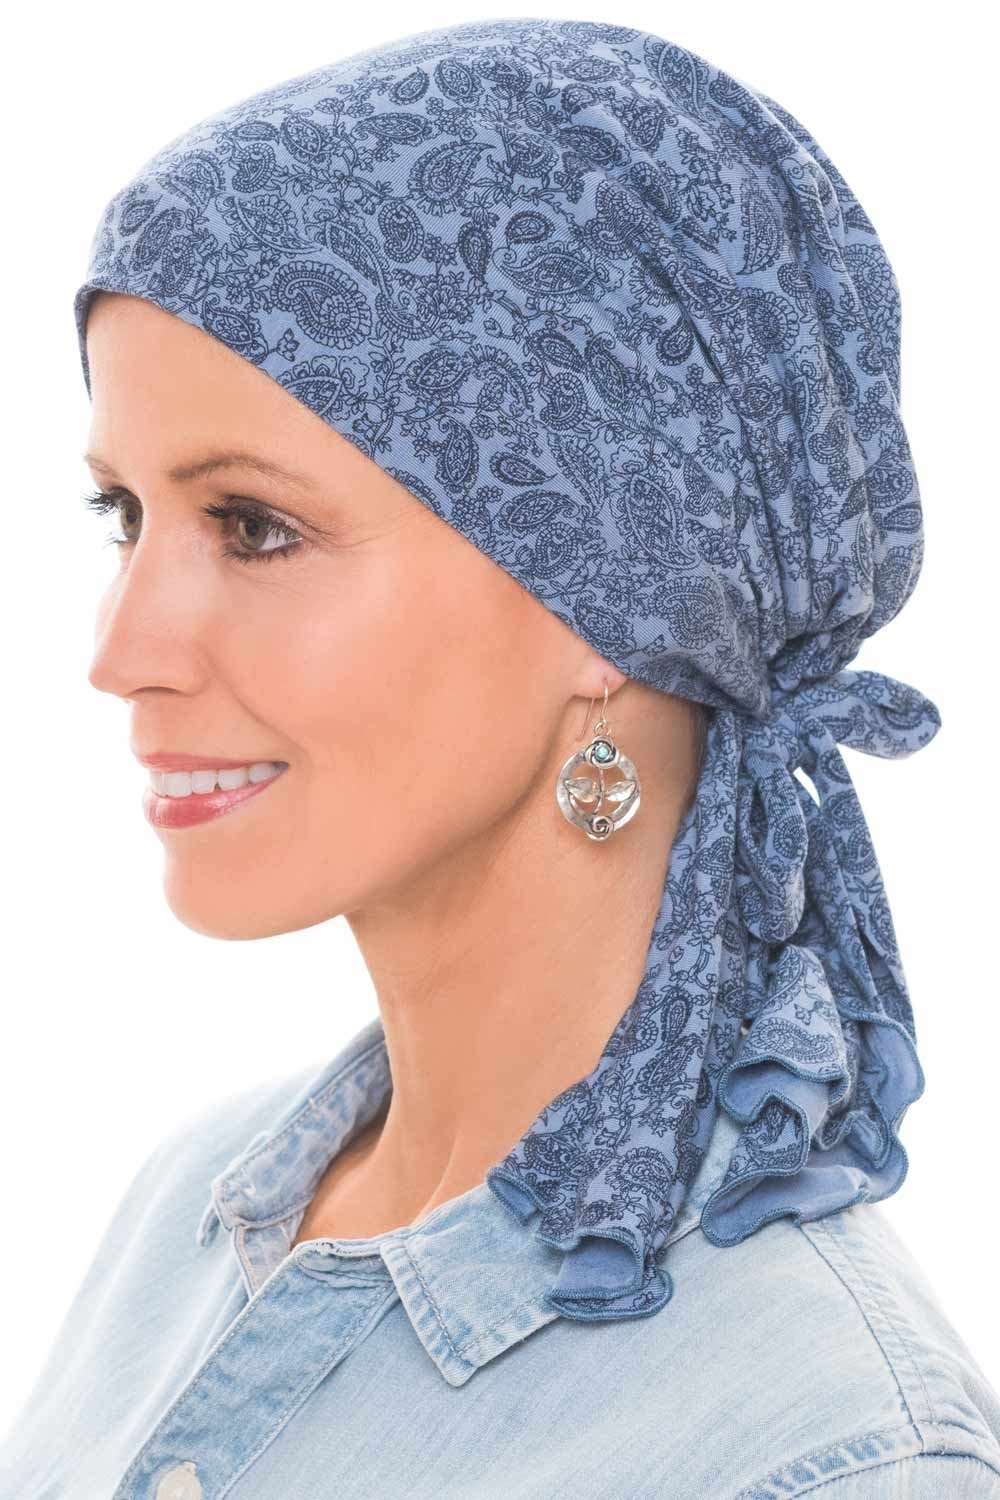 Cardani So Simple Scarf - Pre Tied Head Scarf for Women in Soft Bamboo - Cancer & Chemo Patients Luxury Bamboo - Paisley Denim/Navy